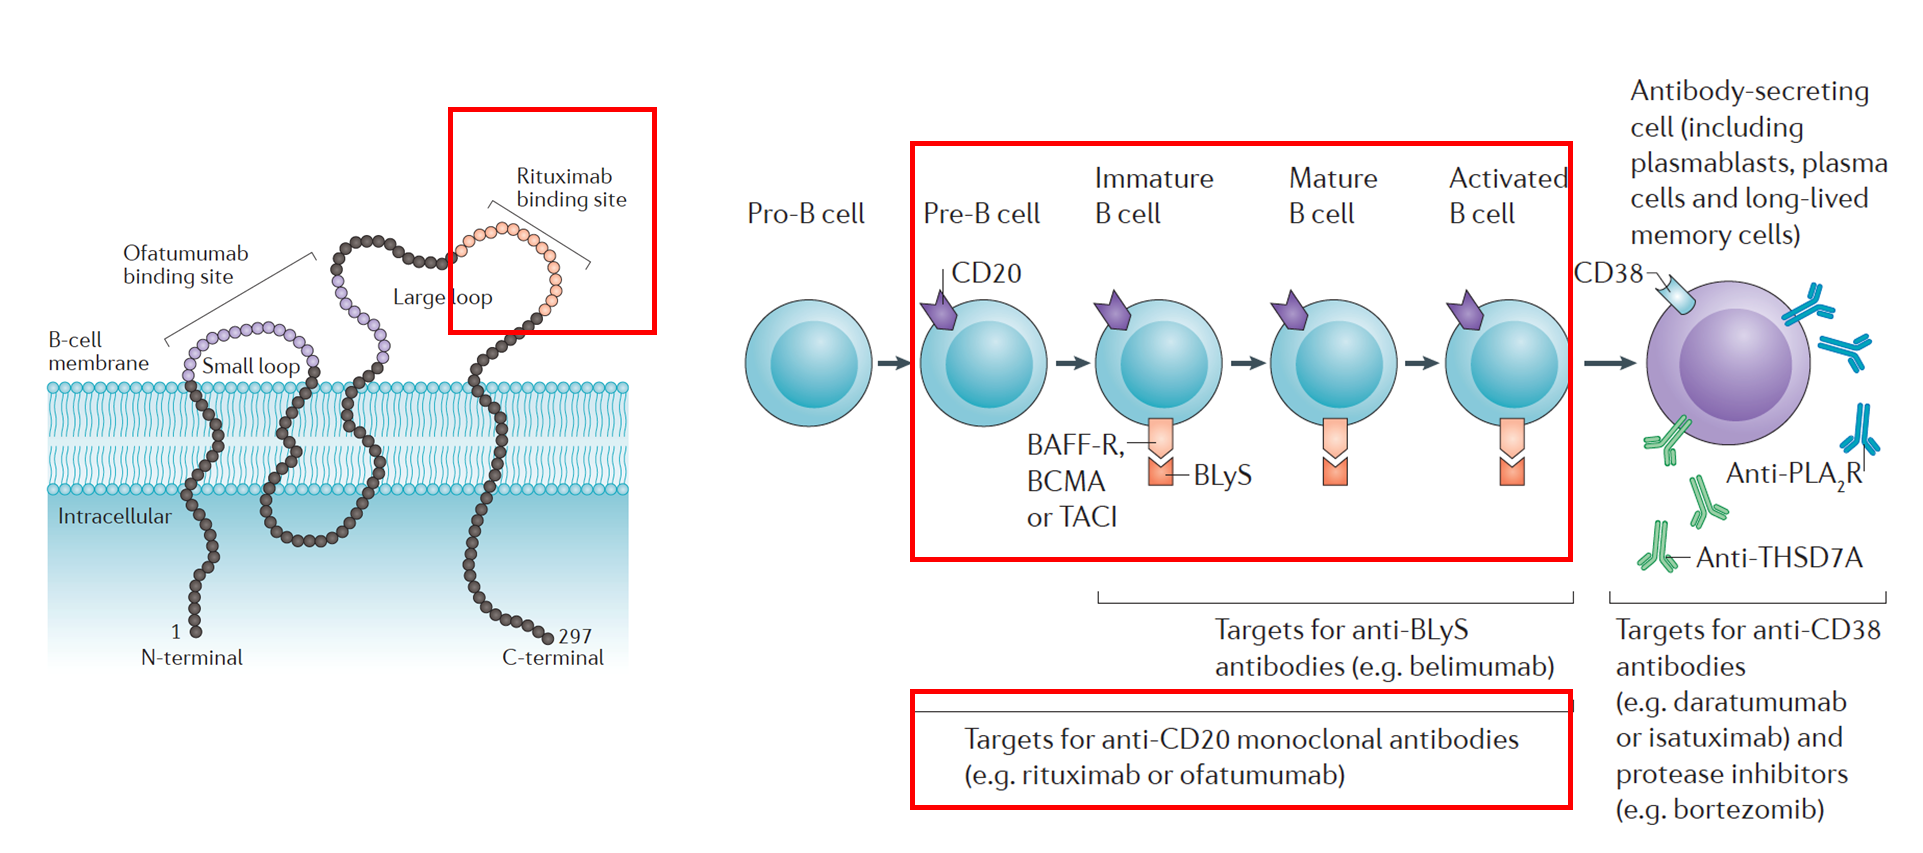 Adapted from  Ruggenenti et al.,  Nature Reviews Nephrology , 2017 . The left panel shows the rituximab binding site on the large loop of the CD20 molecule of a B cell. The right panel shows which types of cells would be targeted by rituximab: CD20 positive pre-B cells, immature B cells, mature B cells, and activated B cells. Plasma cells and long-lived memory cells would not be targeted due to absence of CD20.